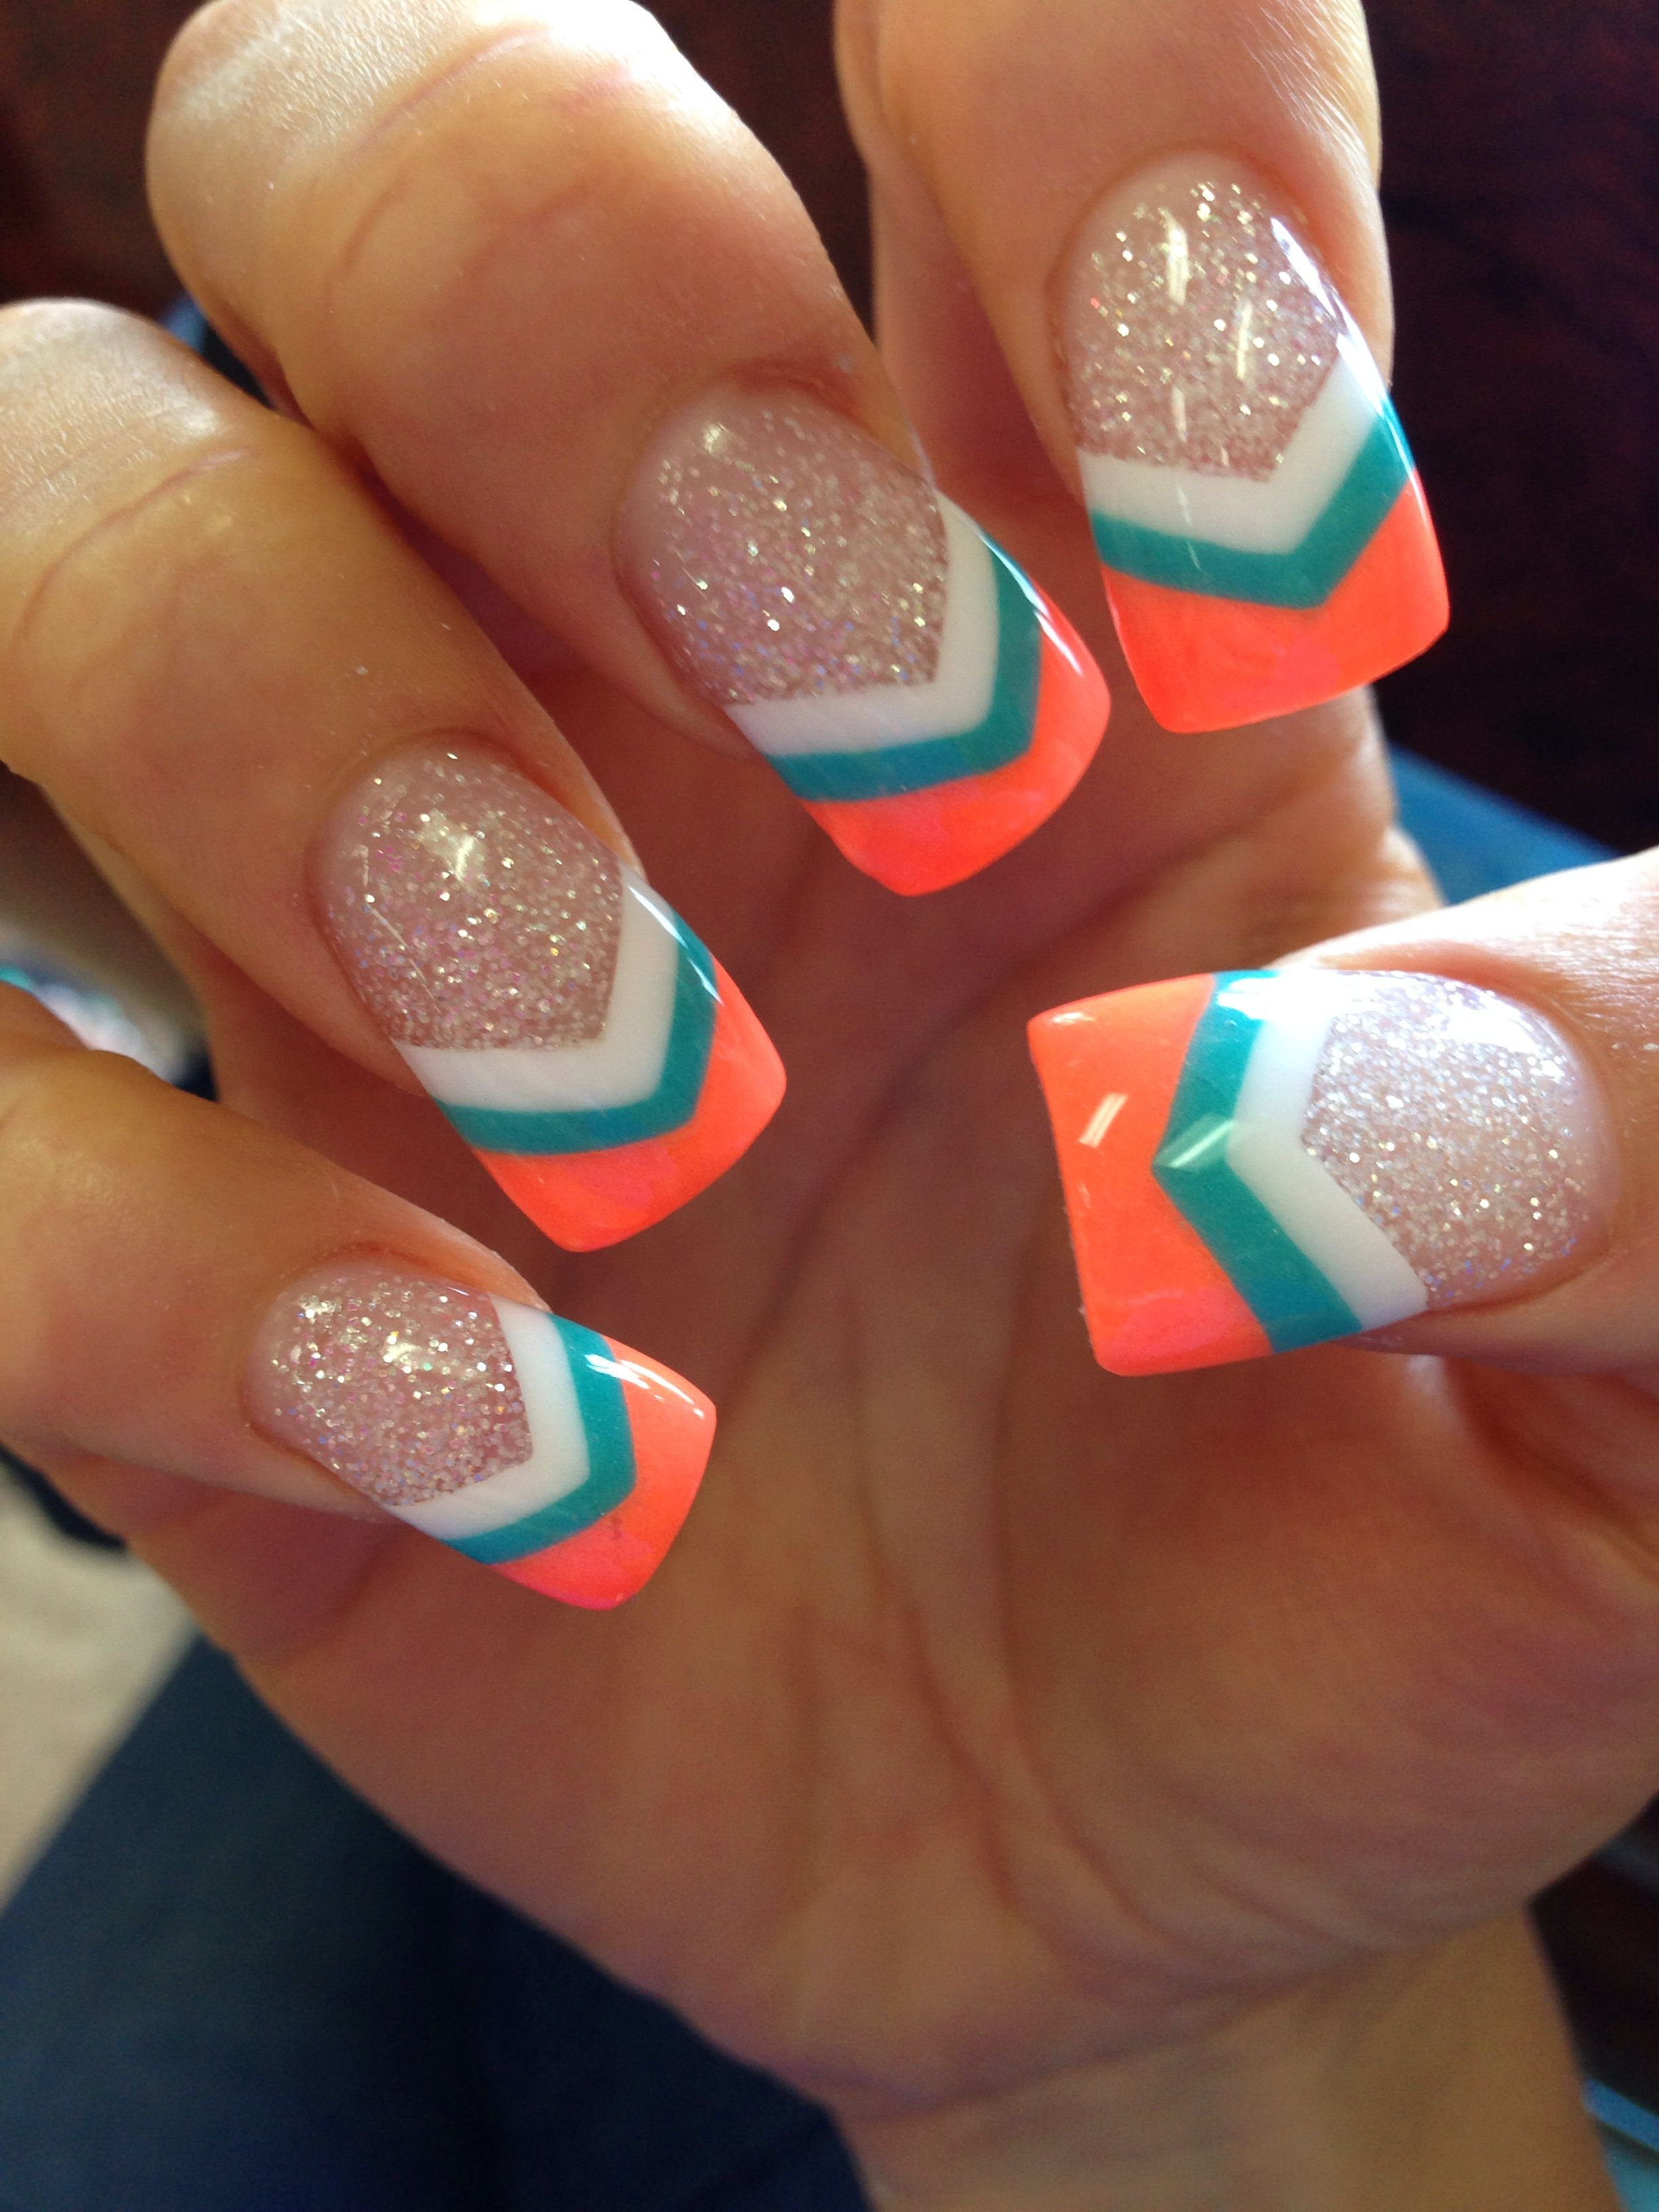 White Teal Neon Coral V Tip Nails For Hawaii Nail Designs Nails Nail Art Designs